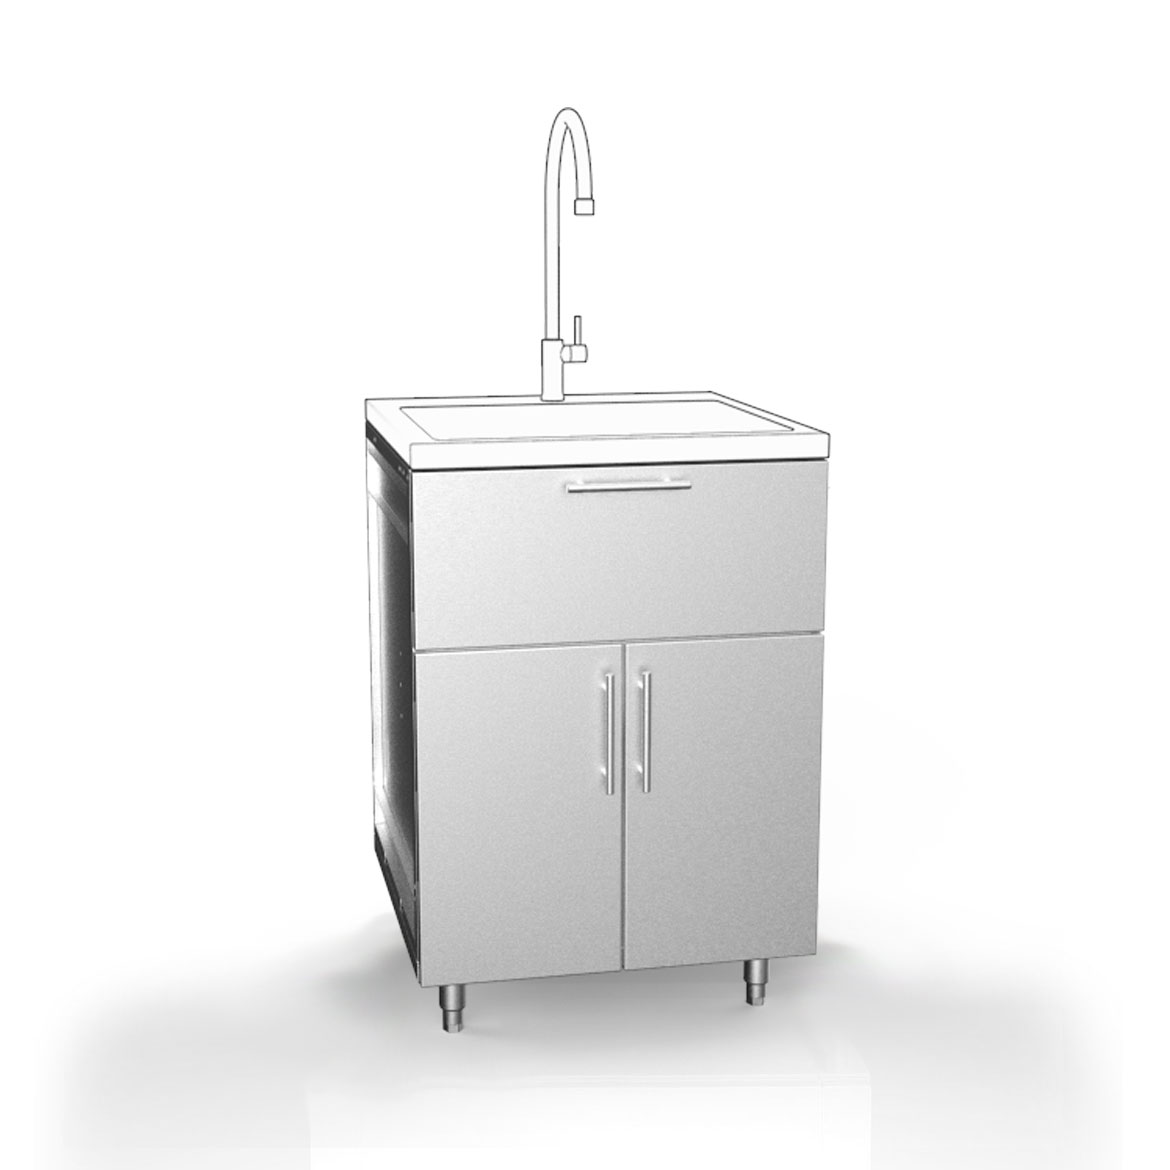 Outdoor Sinks And Cabinets: Stainless Steel Cabinets - Outdoor Cabinets